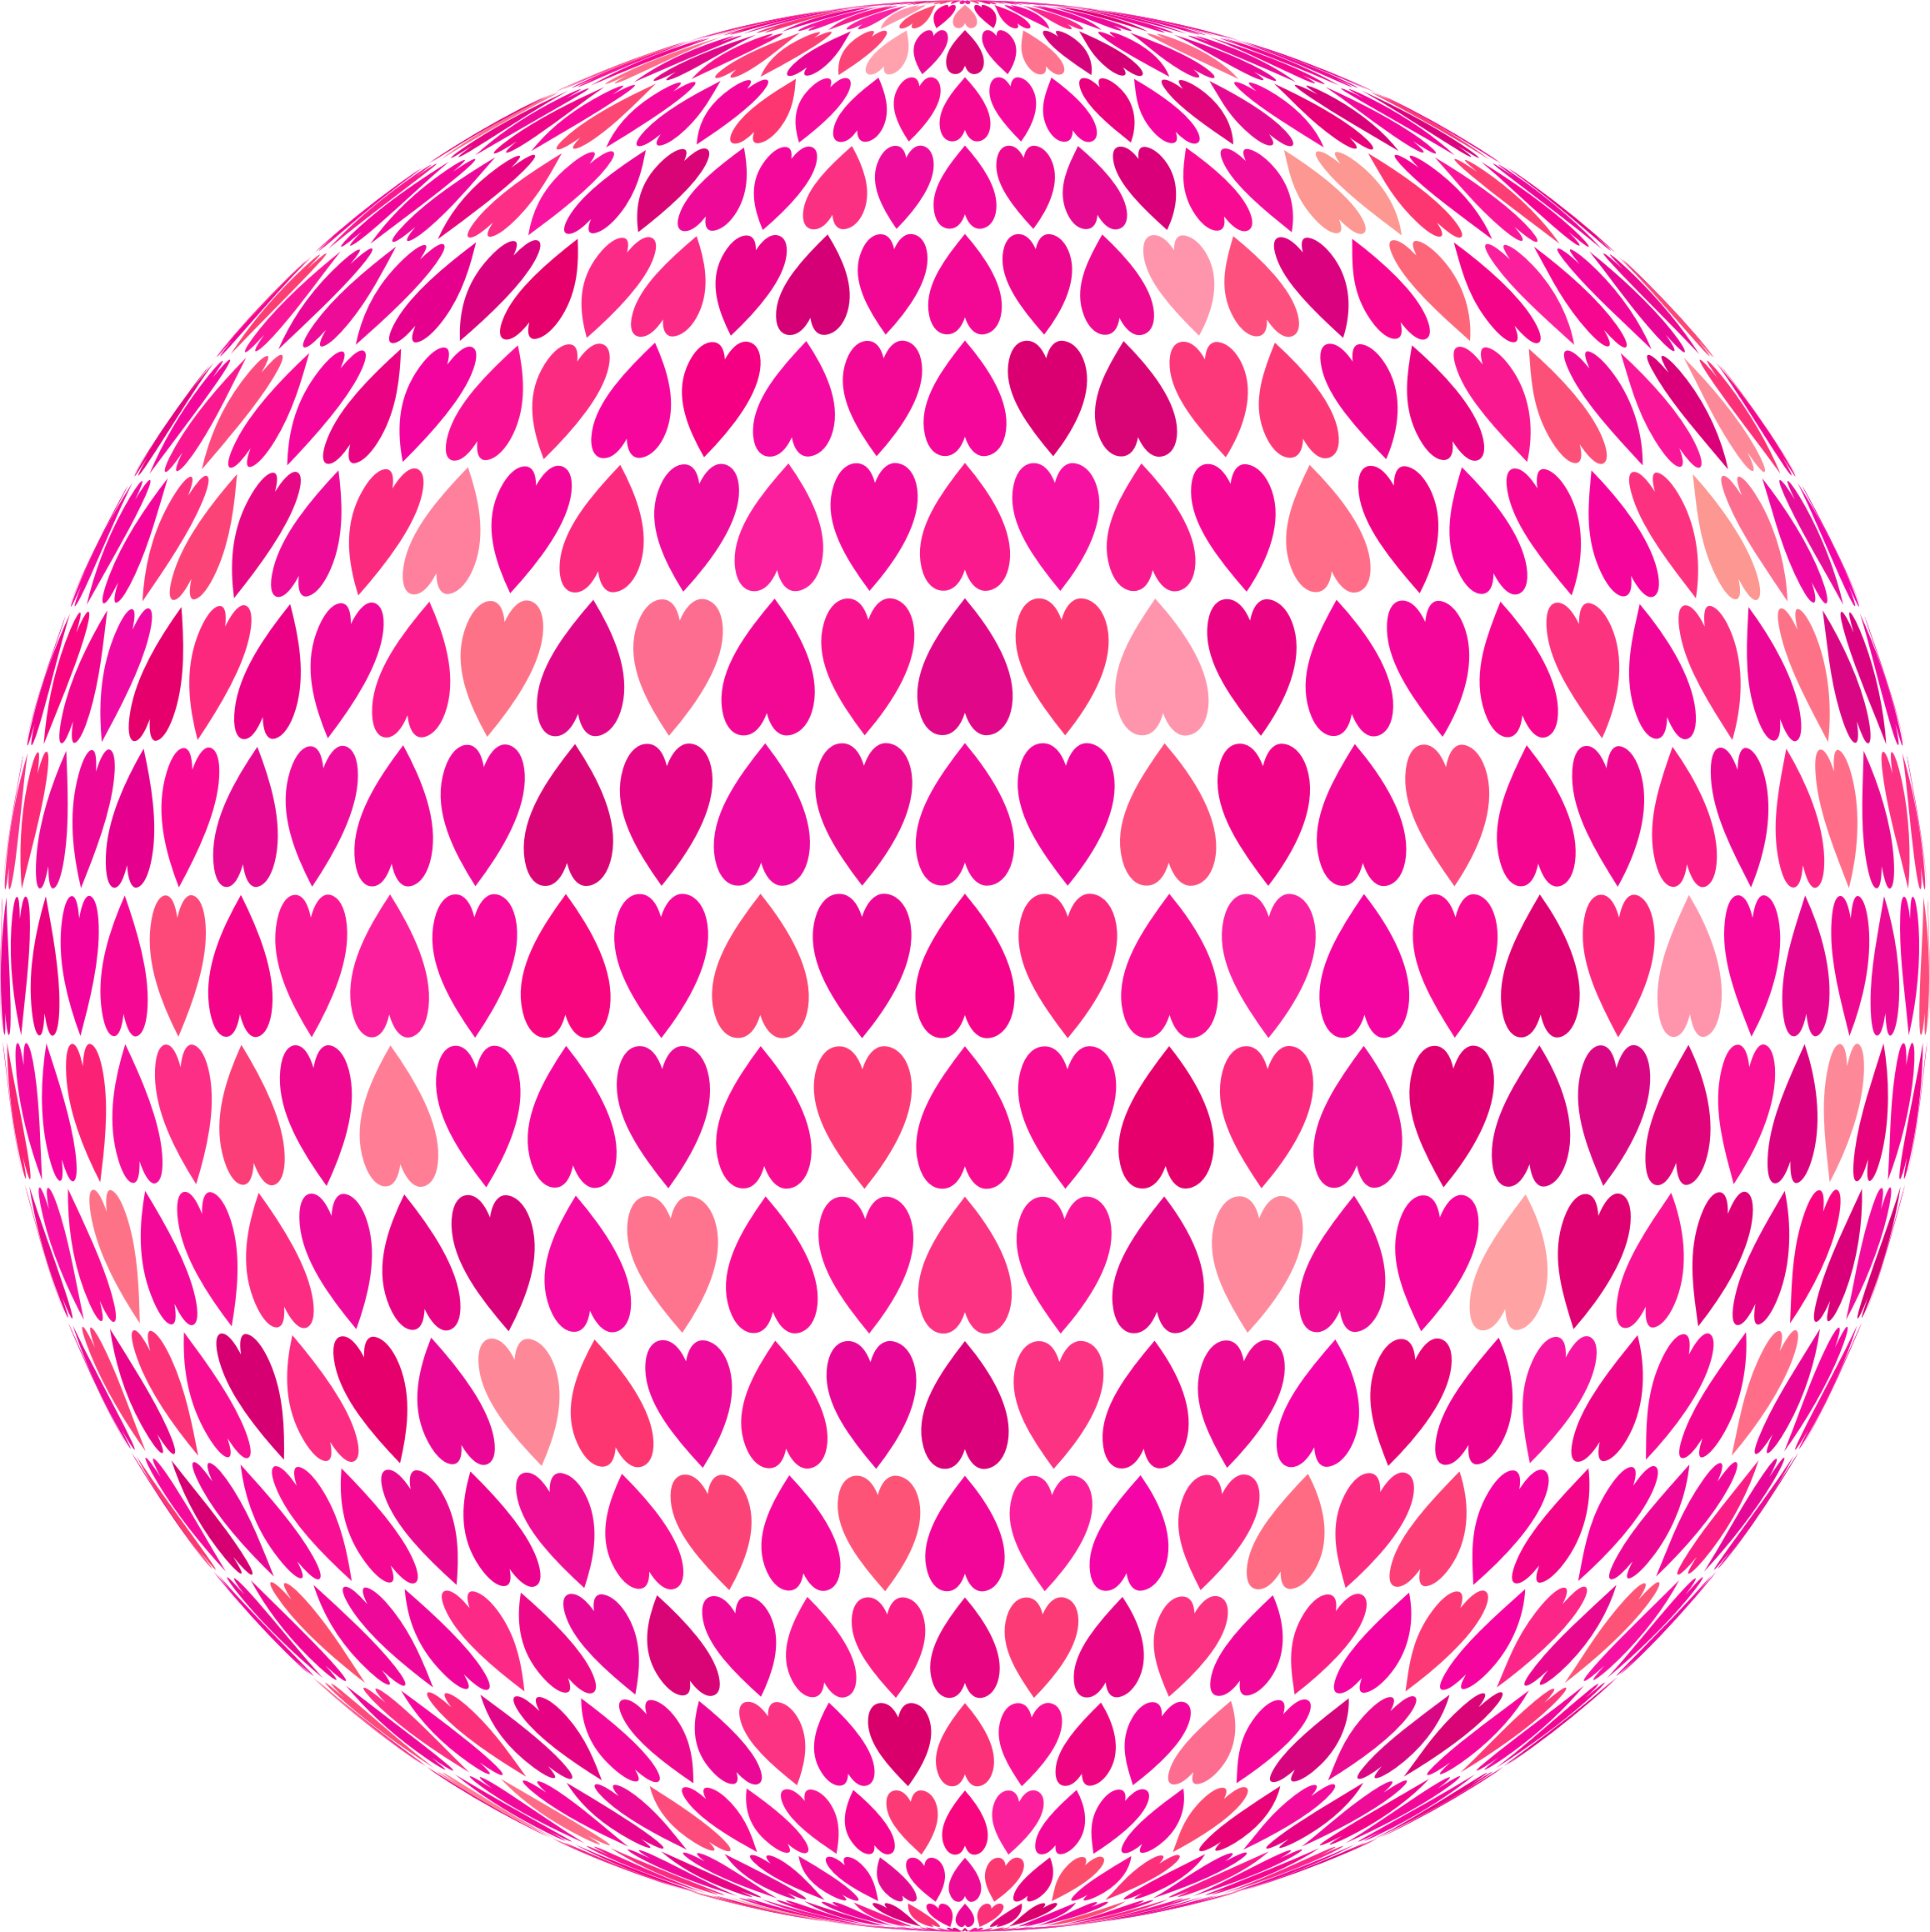 Prismatic Alternating Hearts Sphere 6 No Background by GDJ